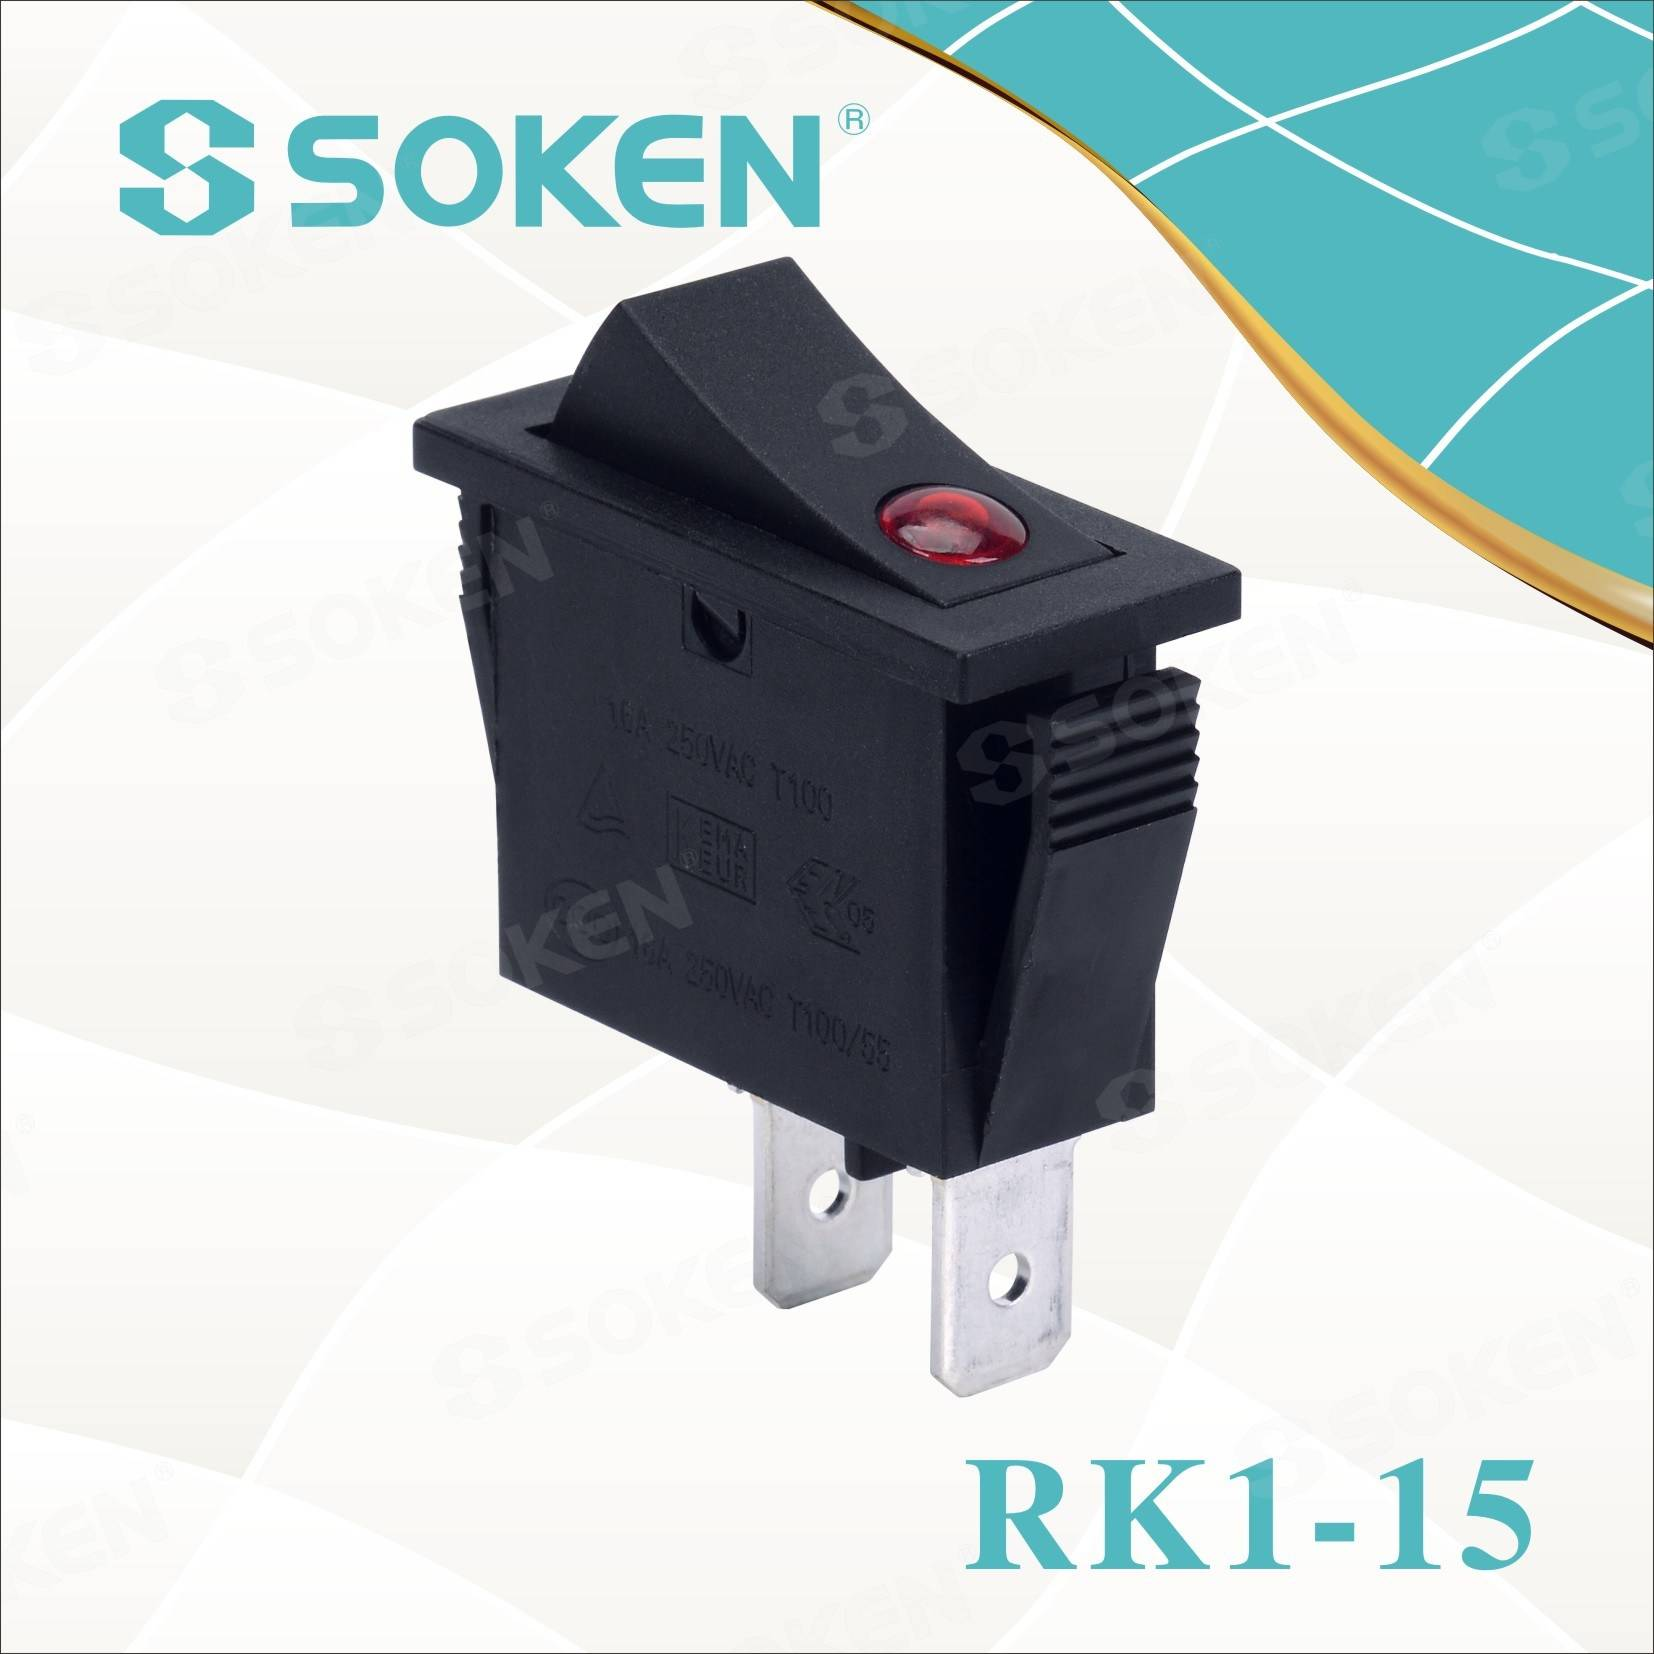 off Rocker Switch Soken Rk1-15 1X1n Lens